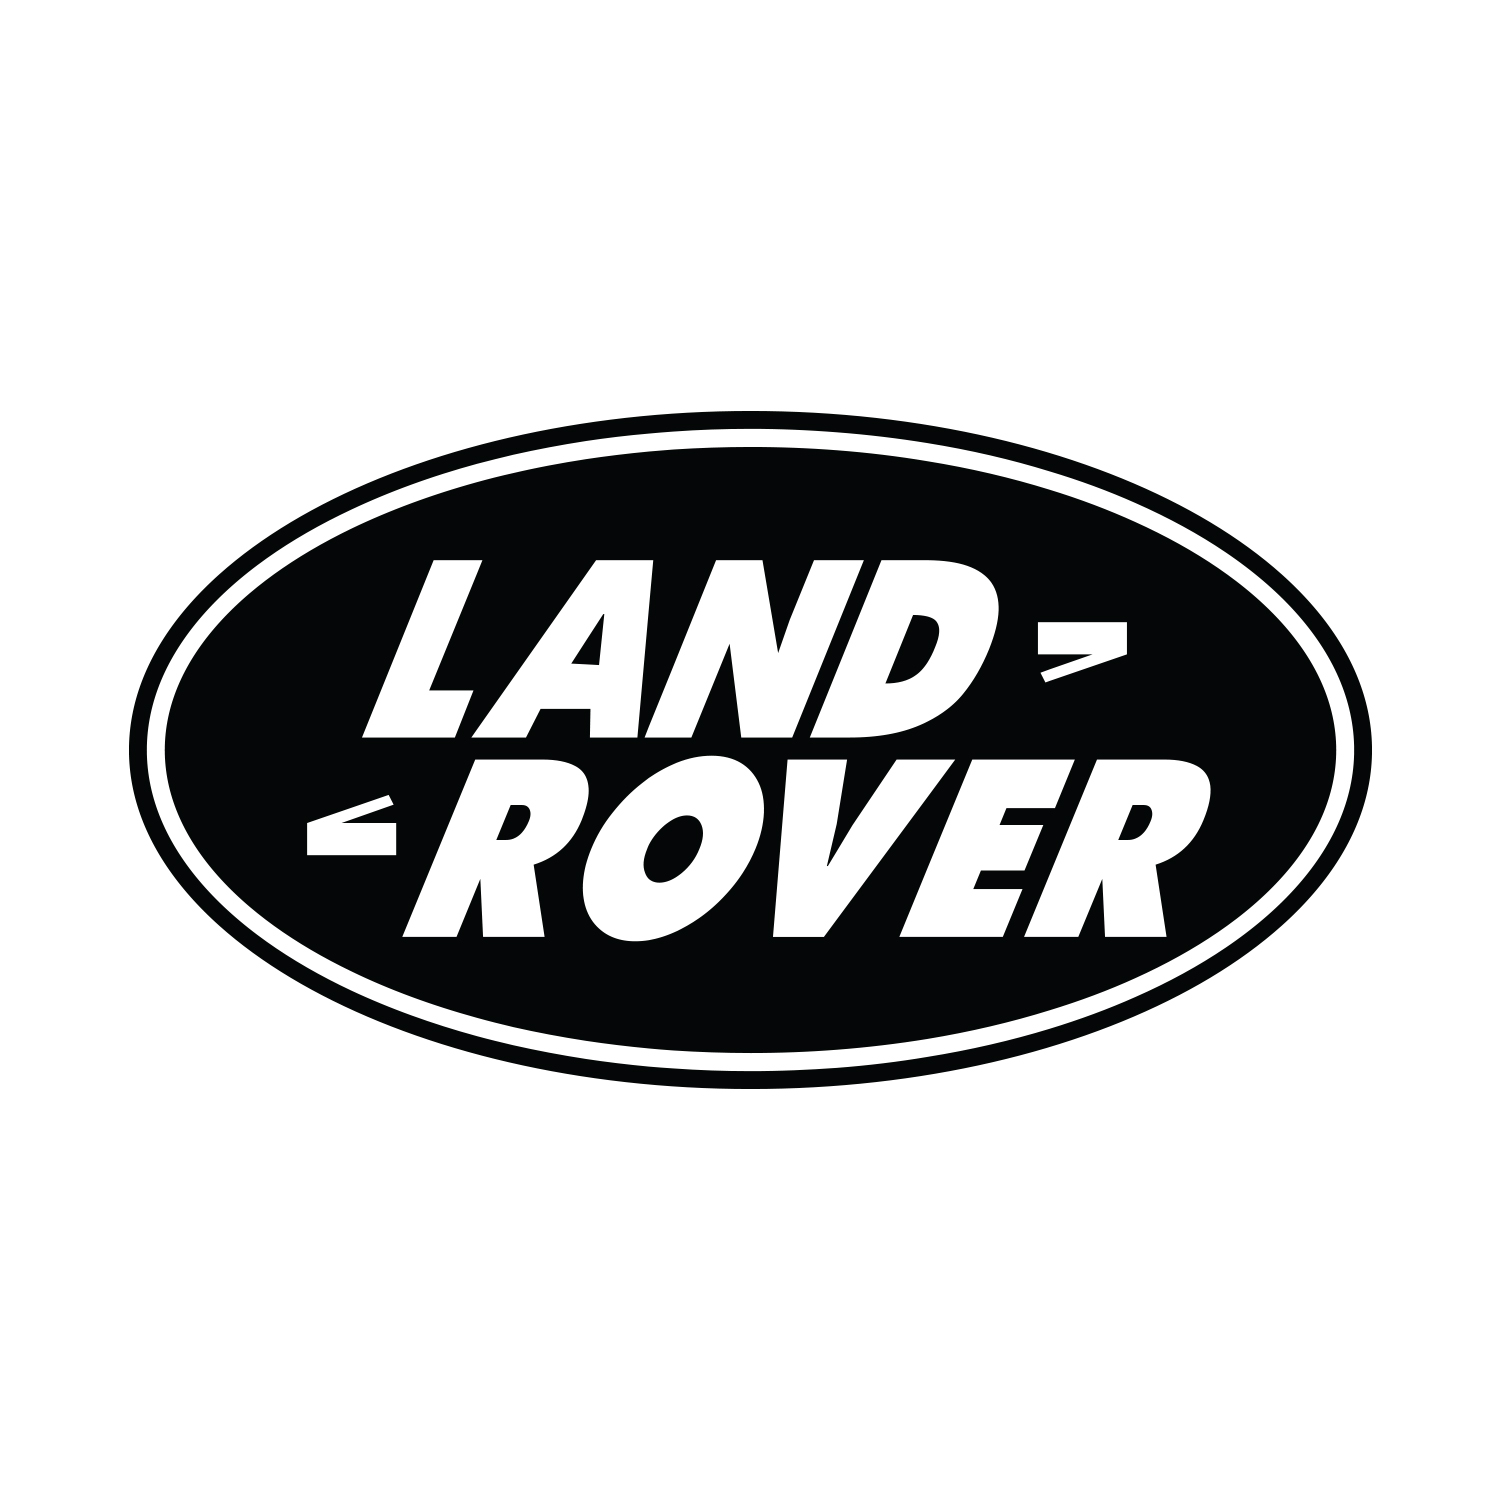 alexpenfornis_clients_web_landrover6.jpg